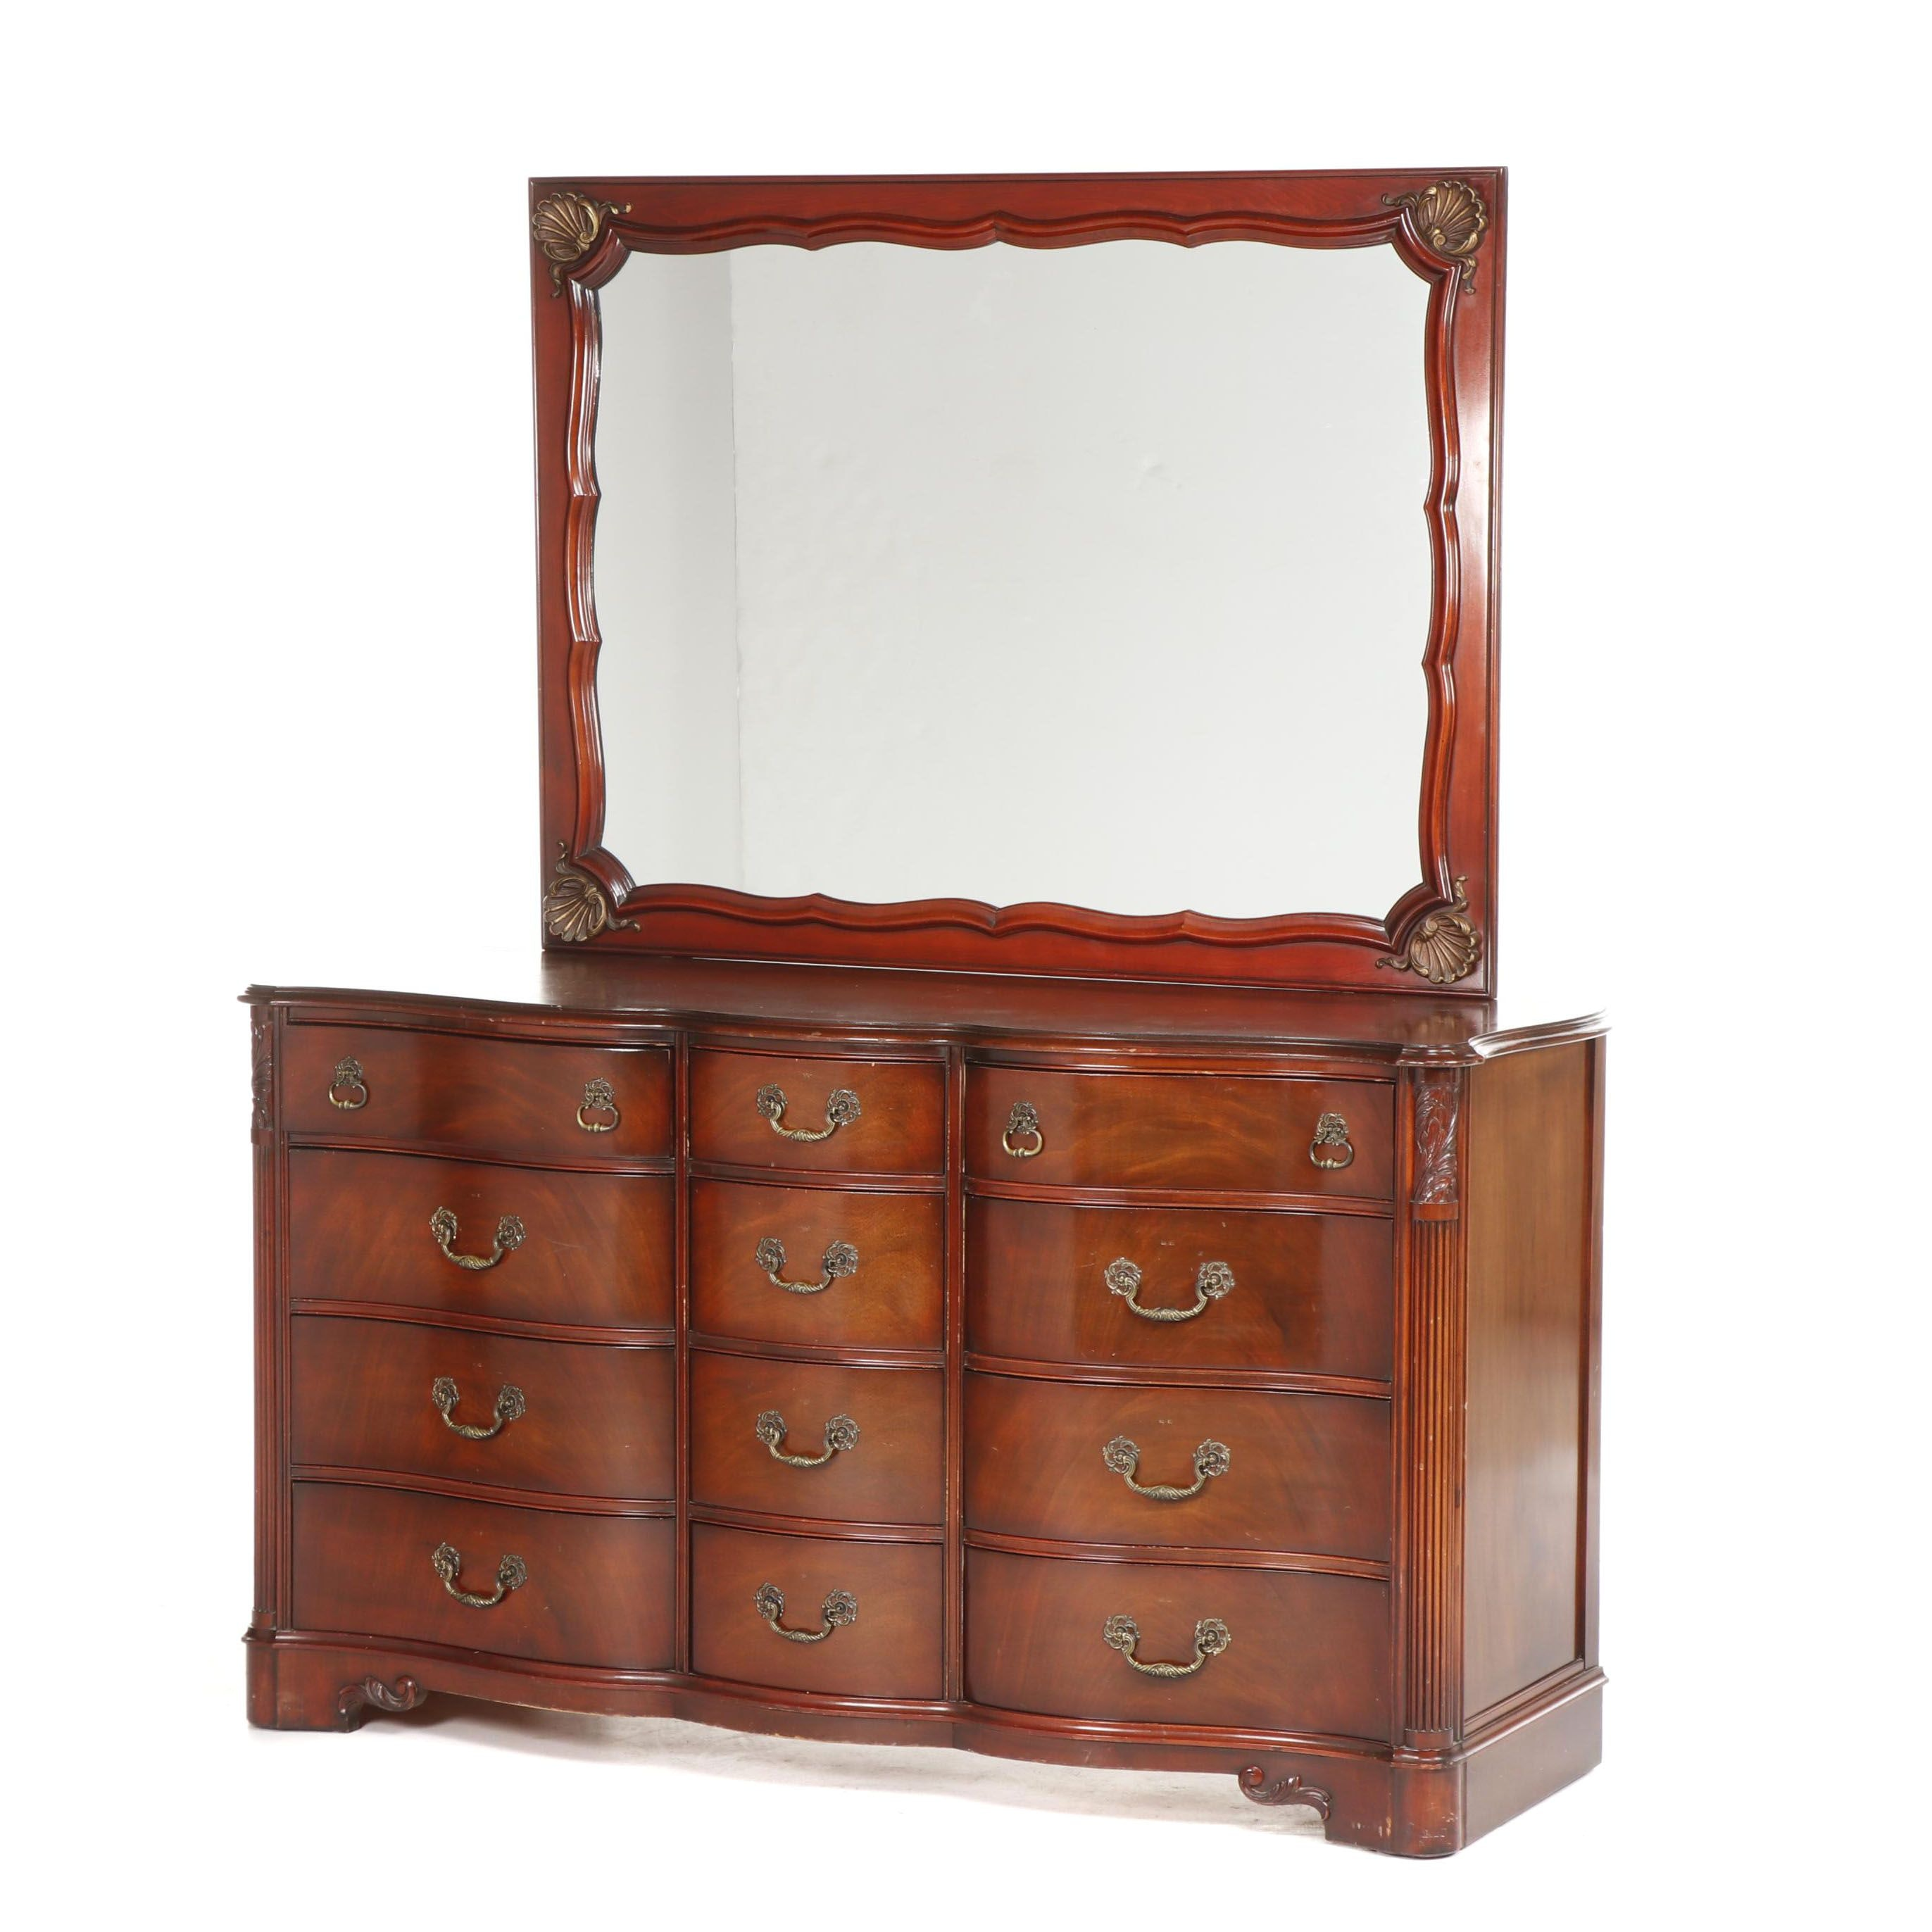 Mahogany Dresser with Mirror by White Furniture Company, Late 20th Century